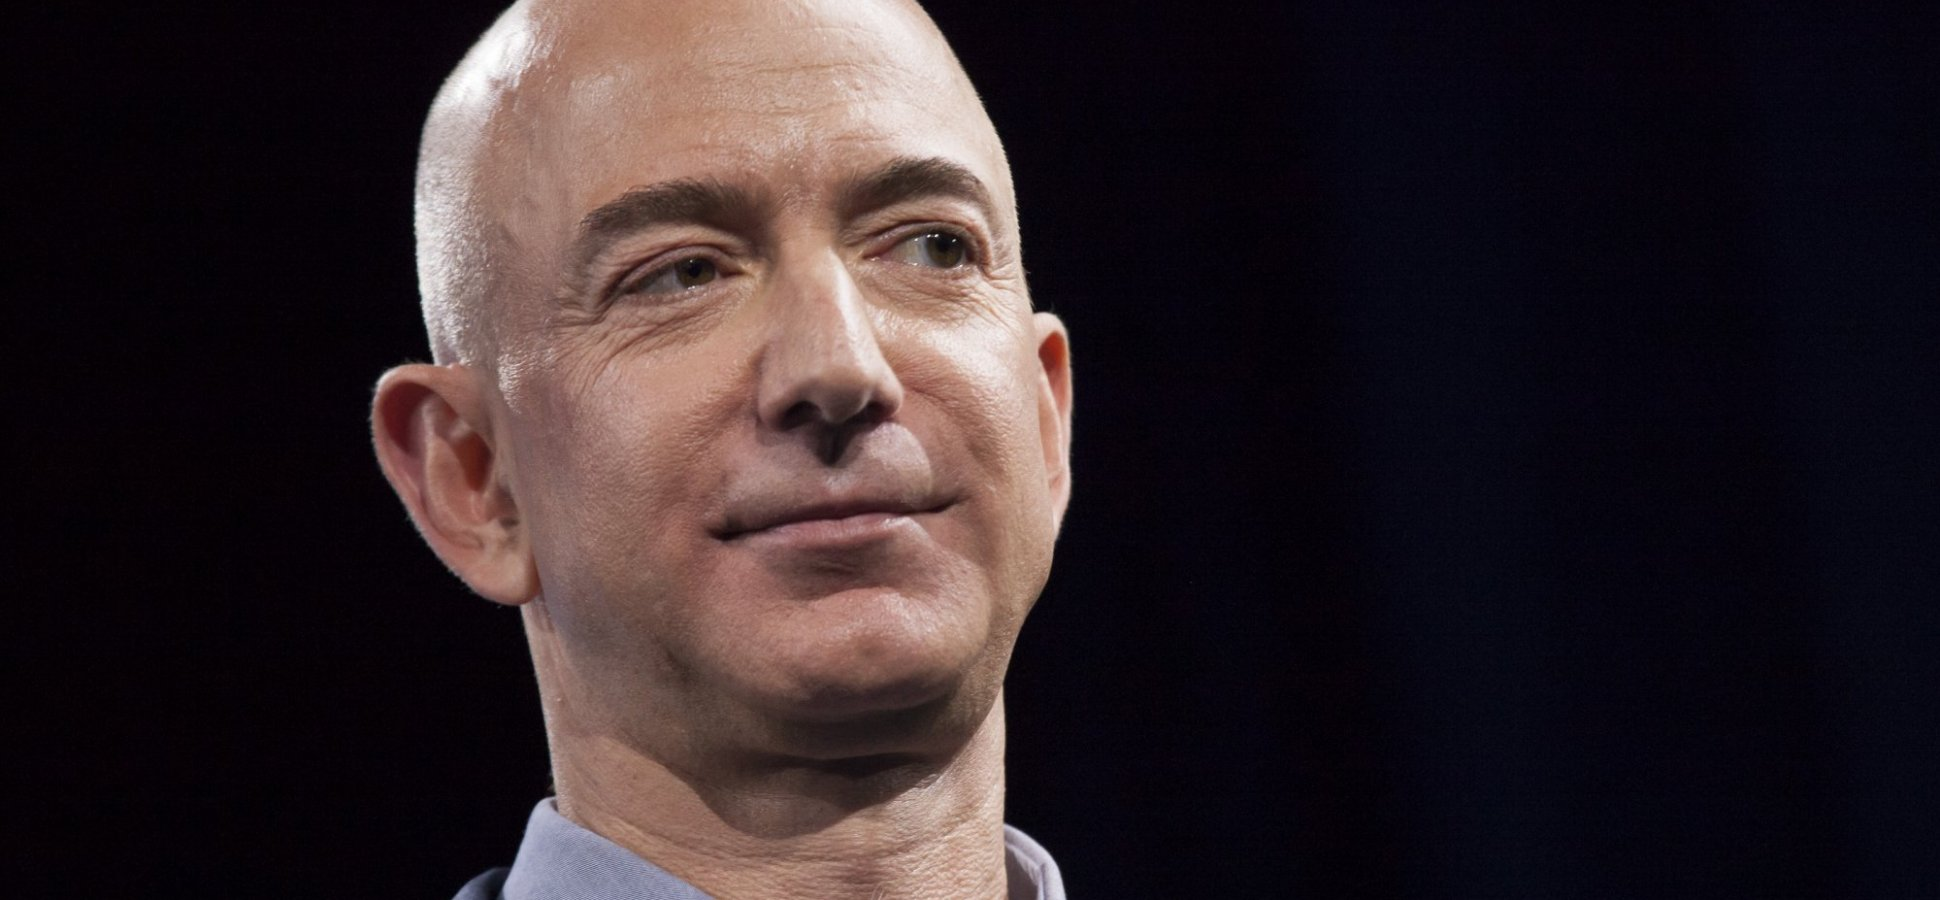 Jeff Bezos Is Now Giving a Free Masterclass In How to Negotiate and Win. (And Nobody Even Noticed)